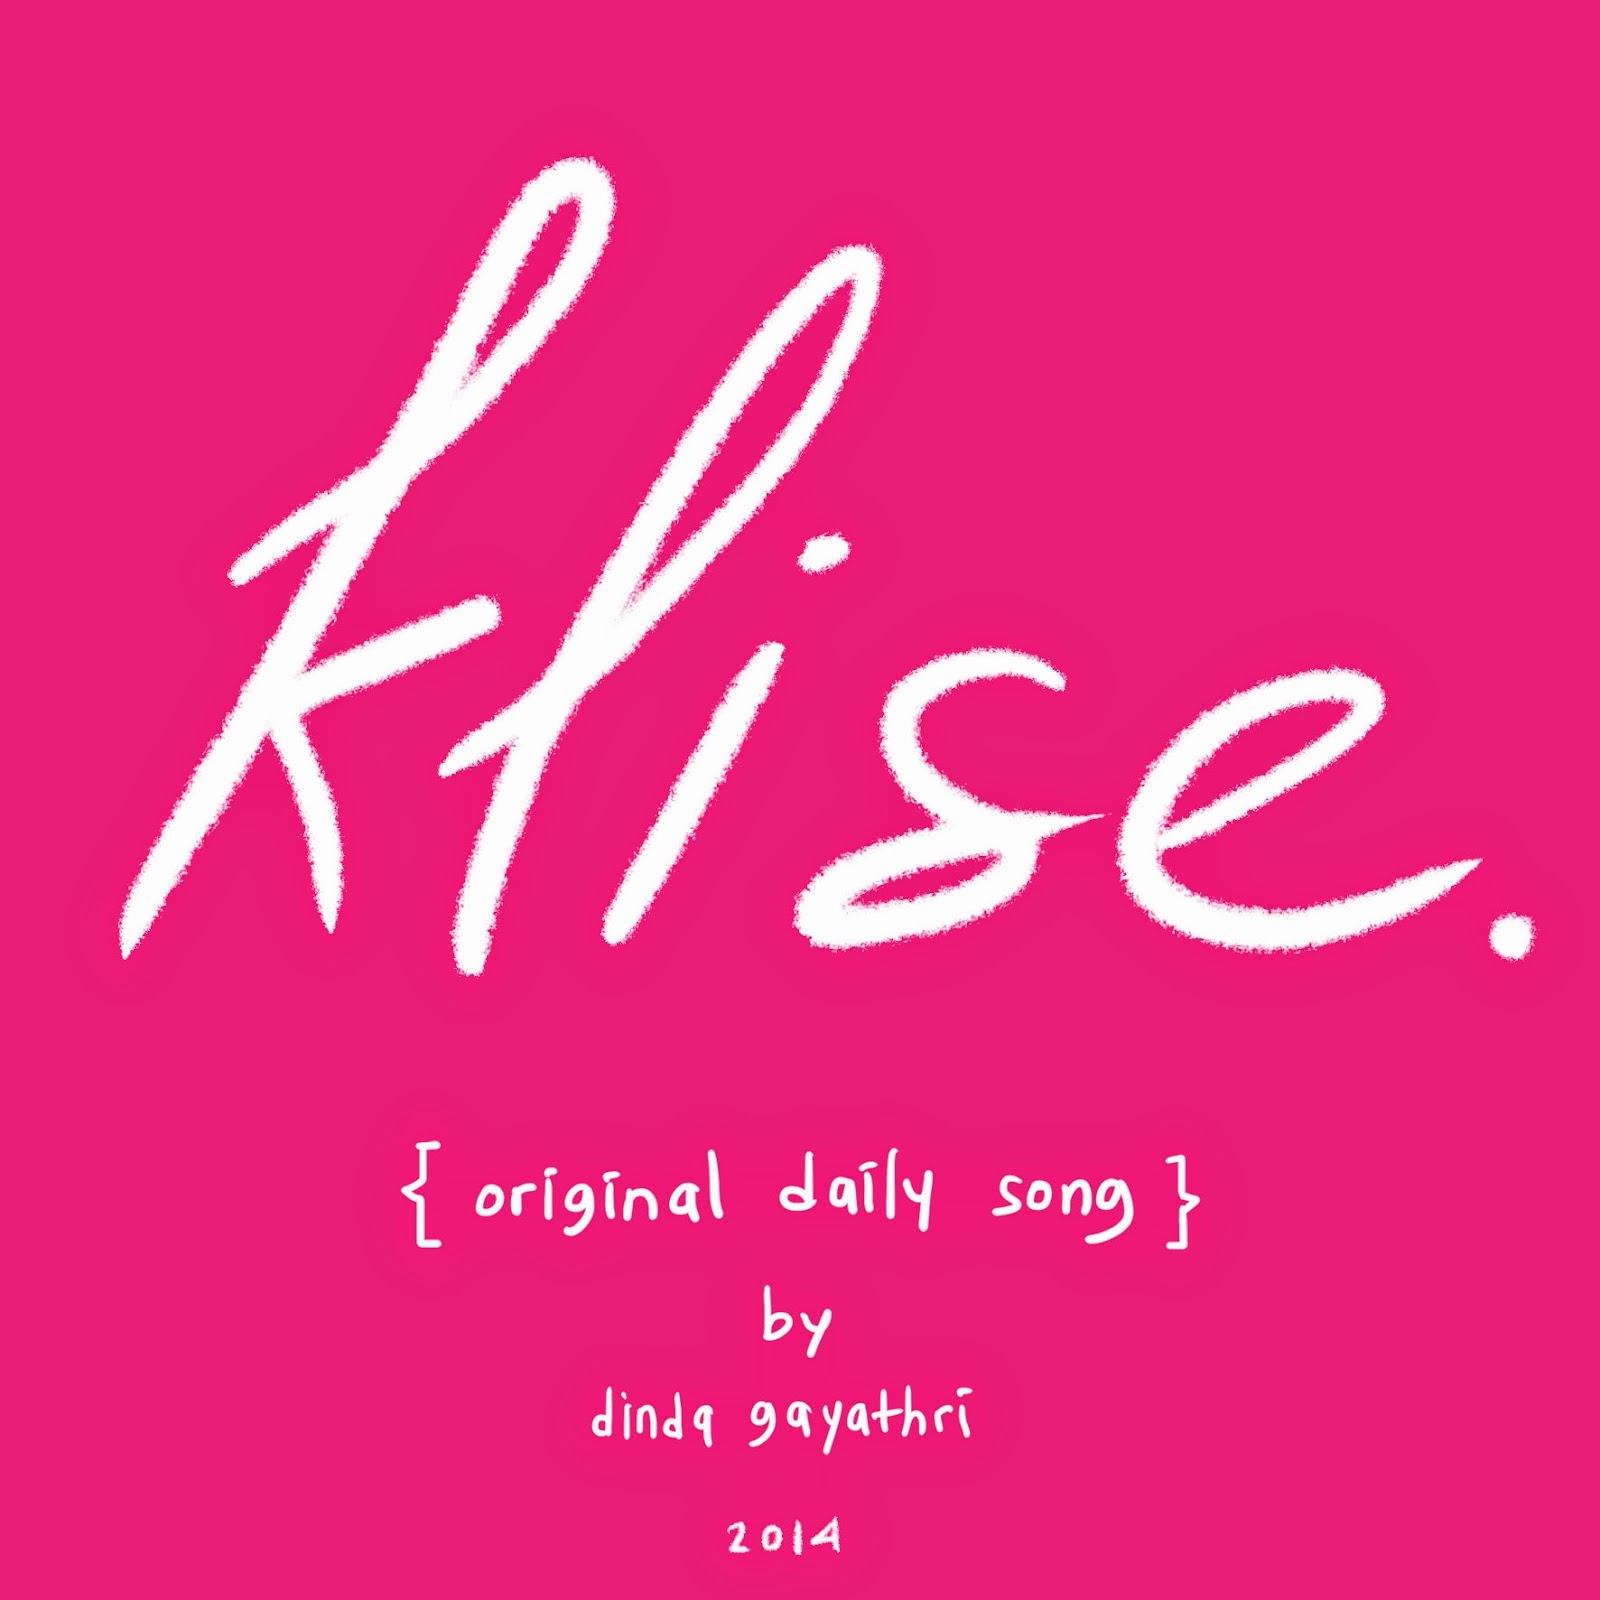 https://soundcloud.com/halodinda/dinda-klise-original-daily-song